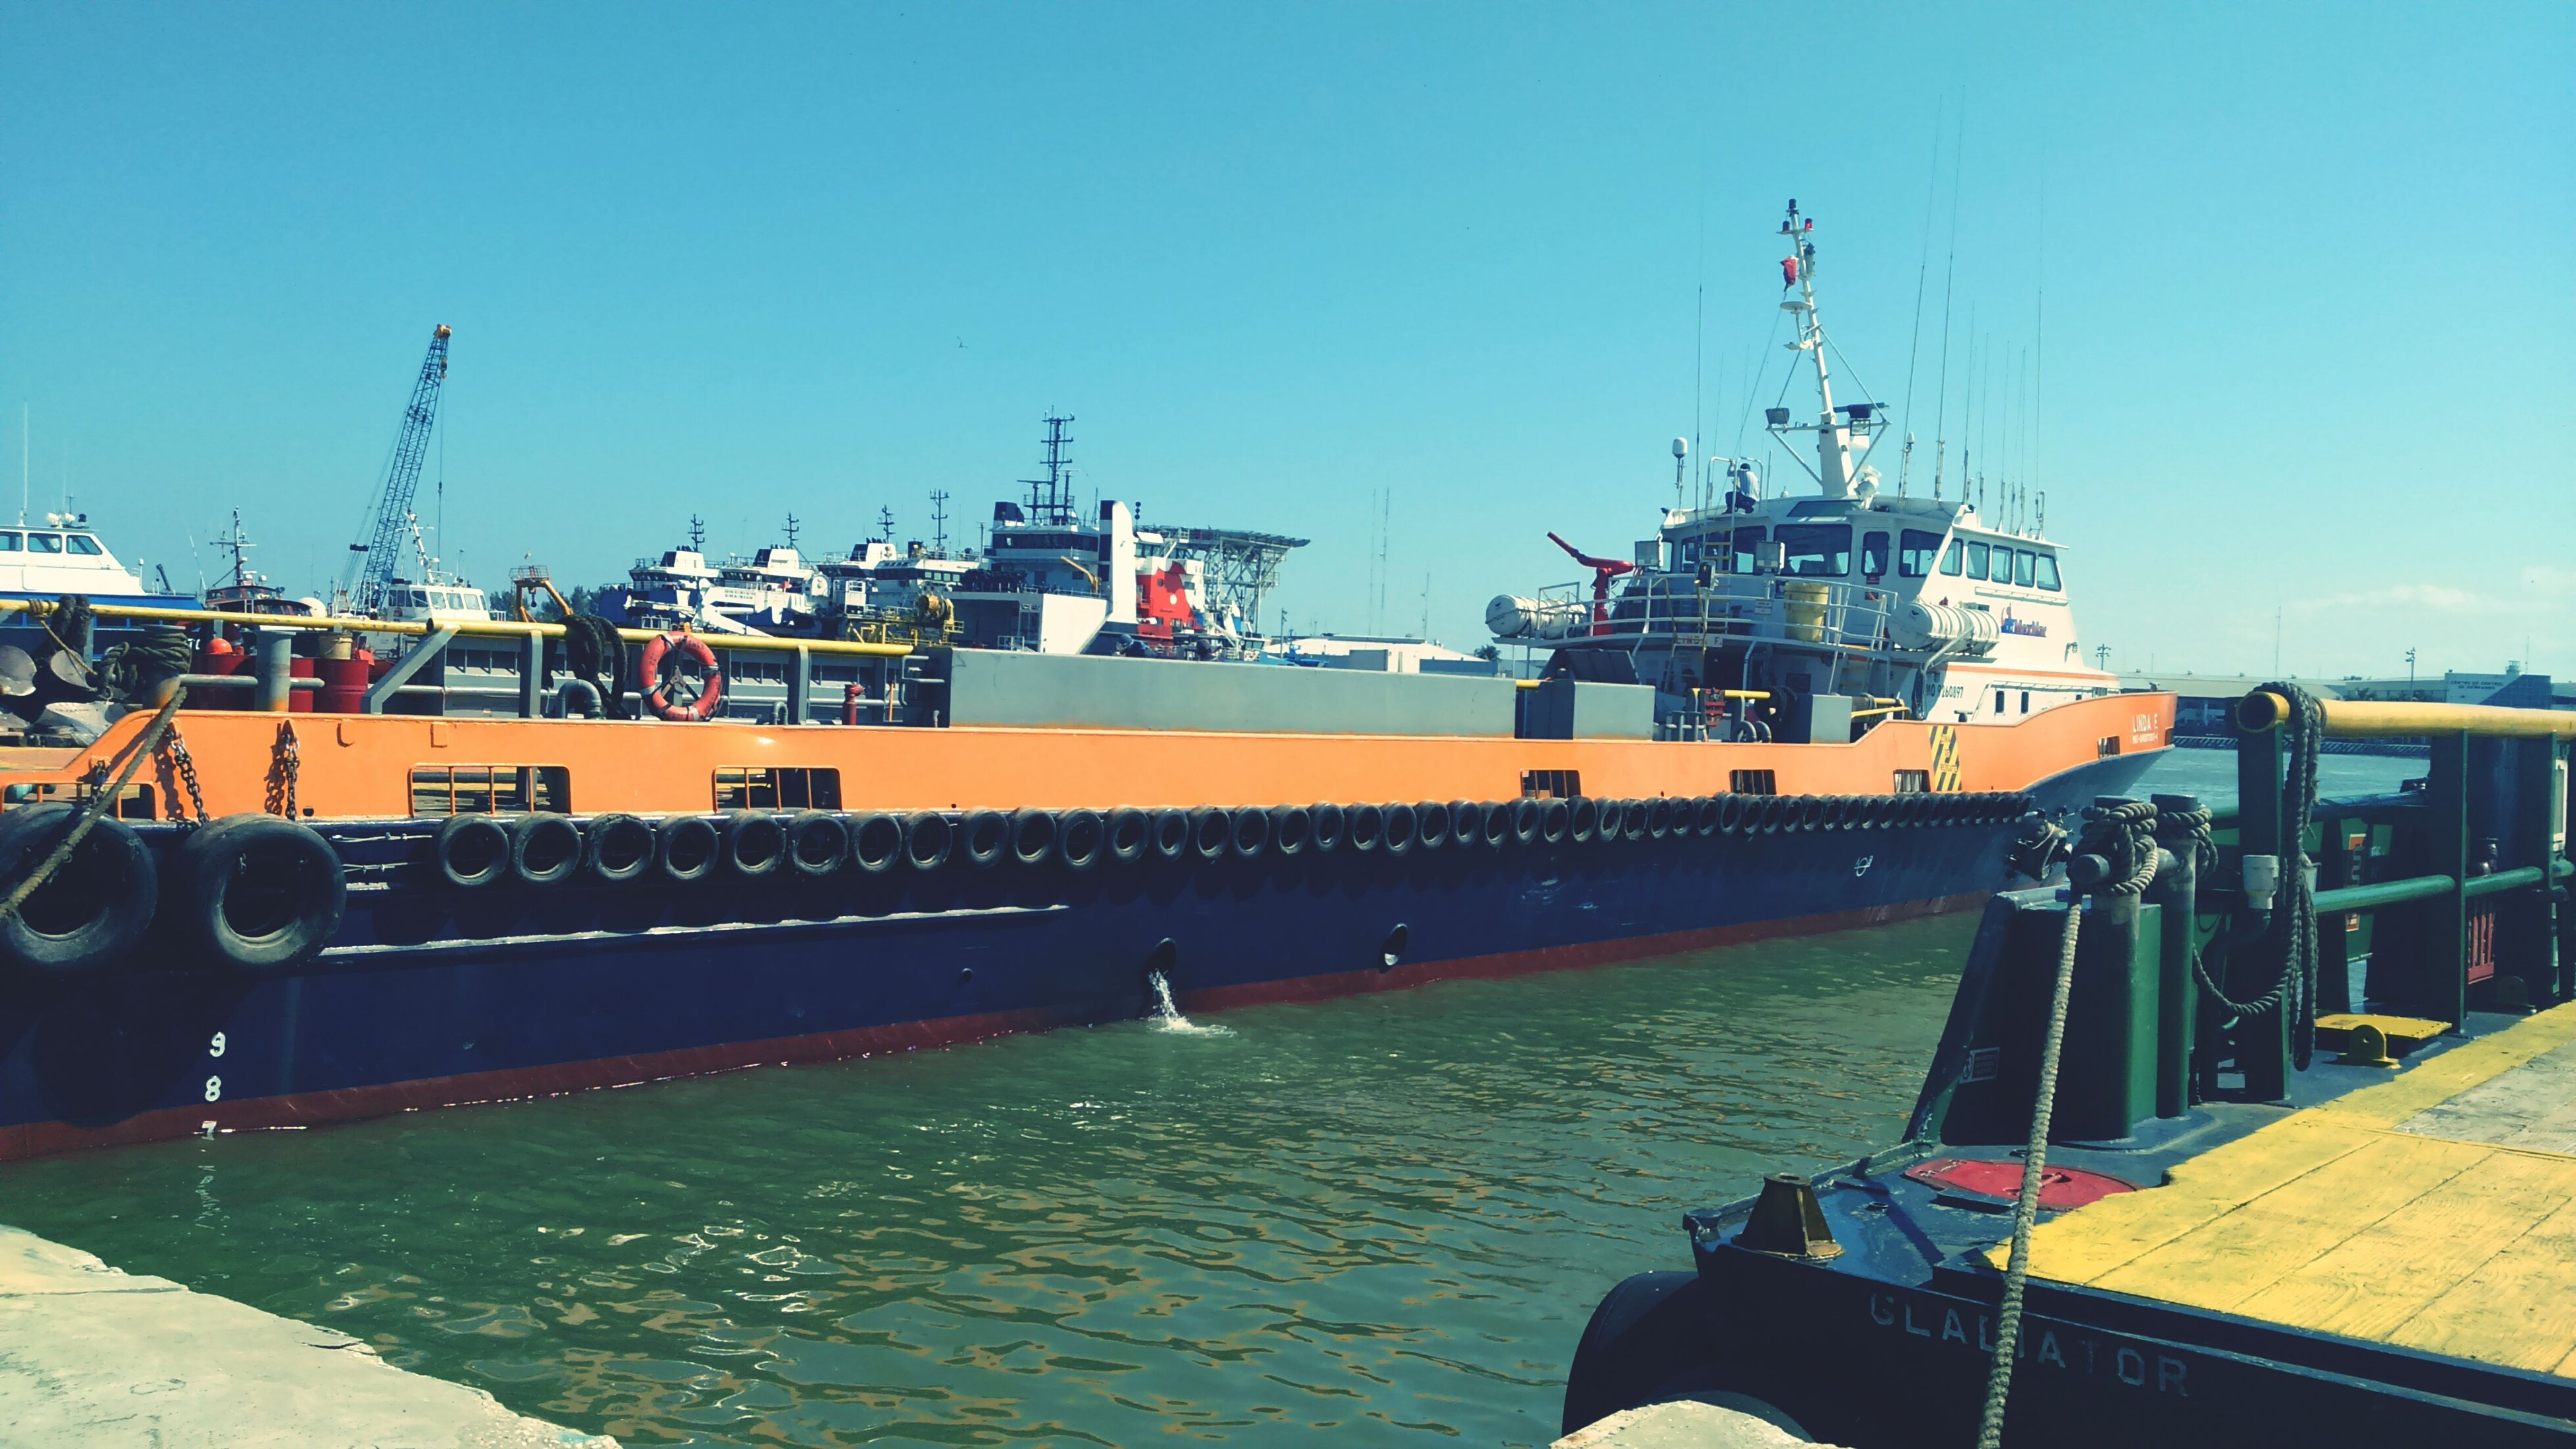 transportation, nautical vessel, clear sky, mode of transport, water, built structure, boat, harbor, moored, architecture, crane - construction machinery, building exterior, commercial dock, copy space, industry, freight transportation, mast, blue, ship, river